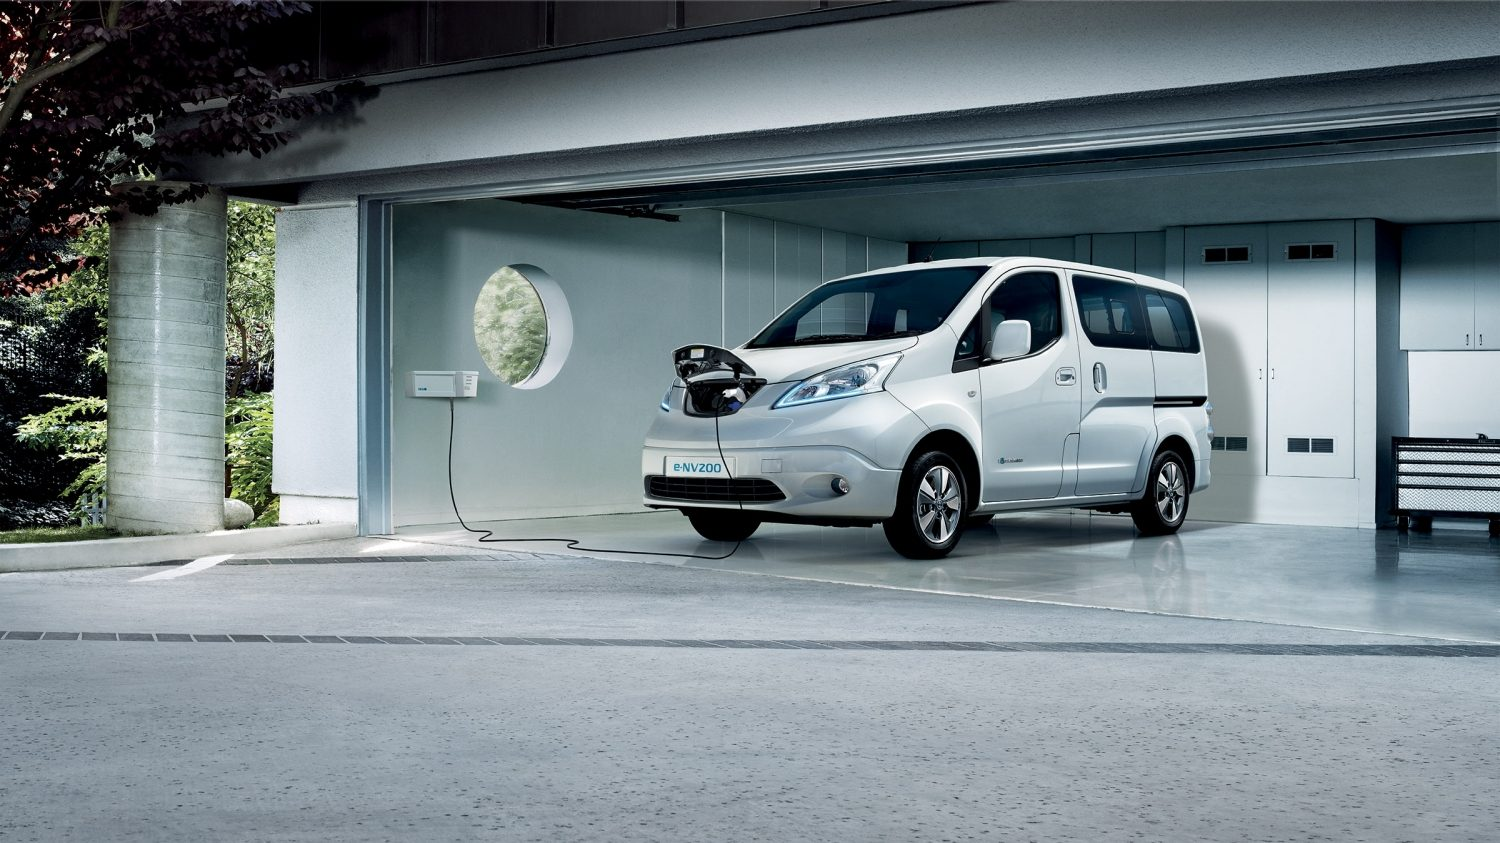 Nissan e-NV200 Evalia - Charging in a garage